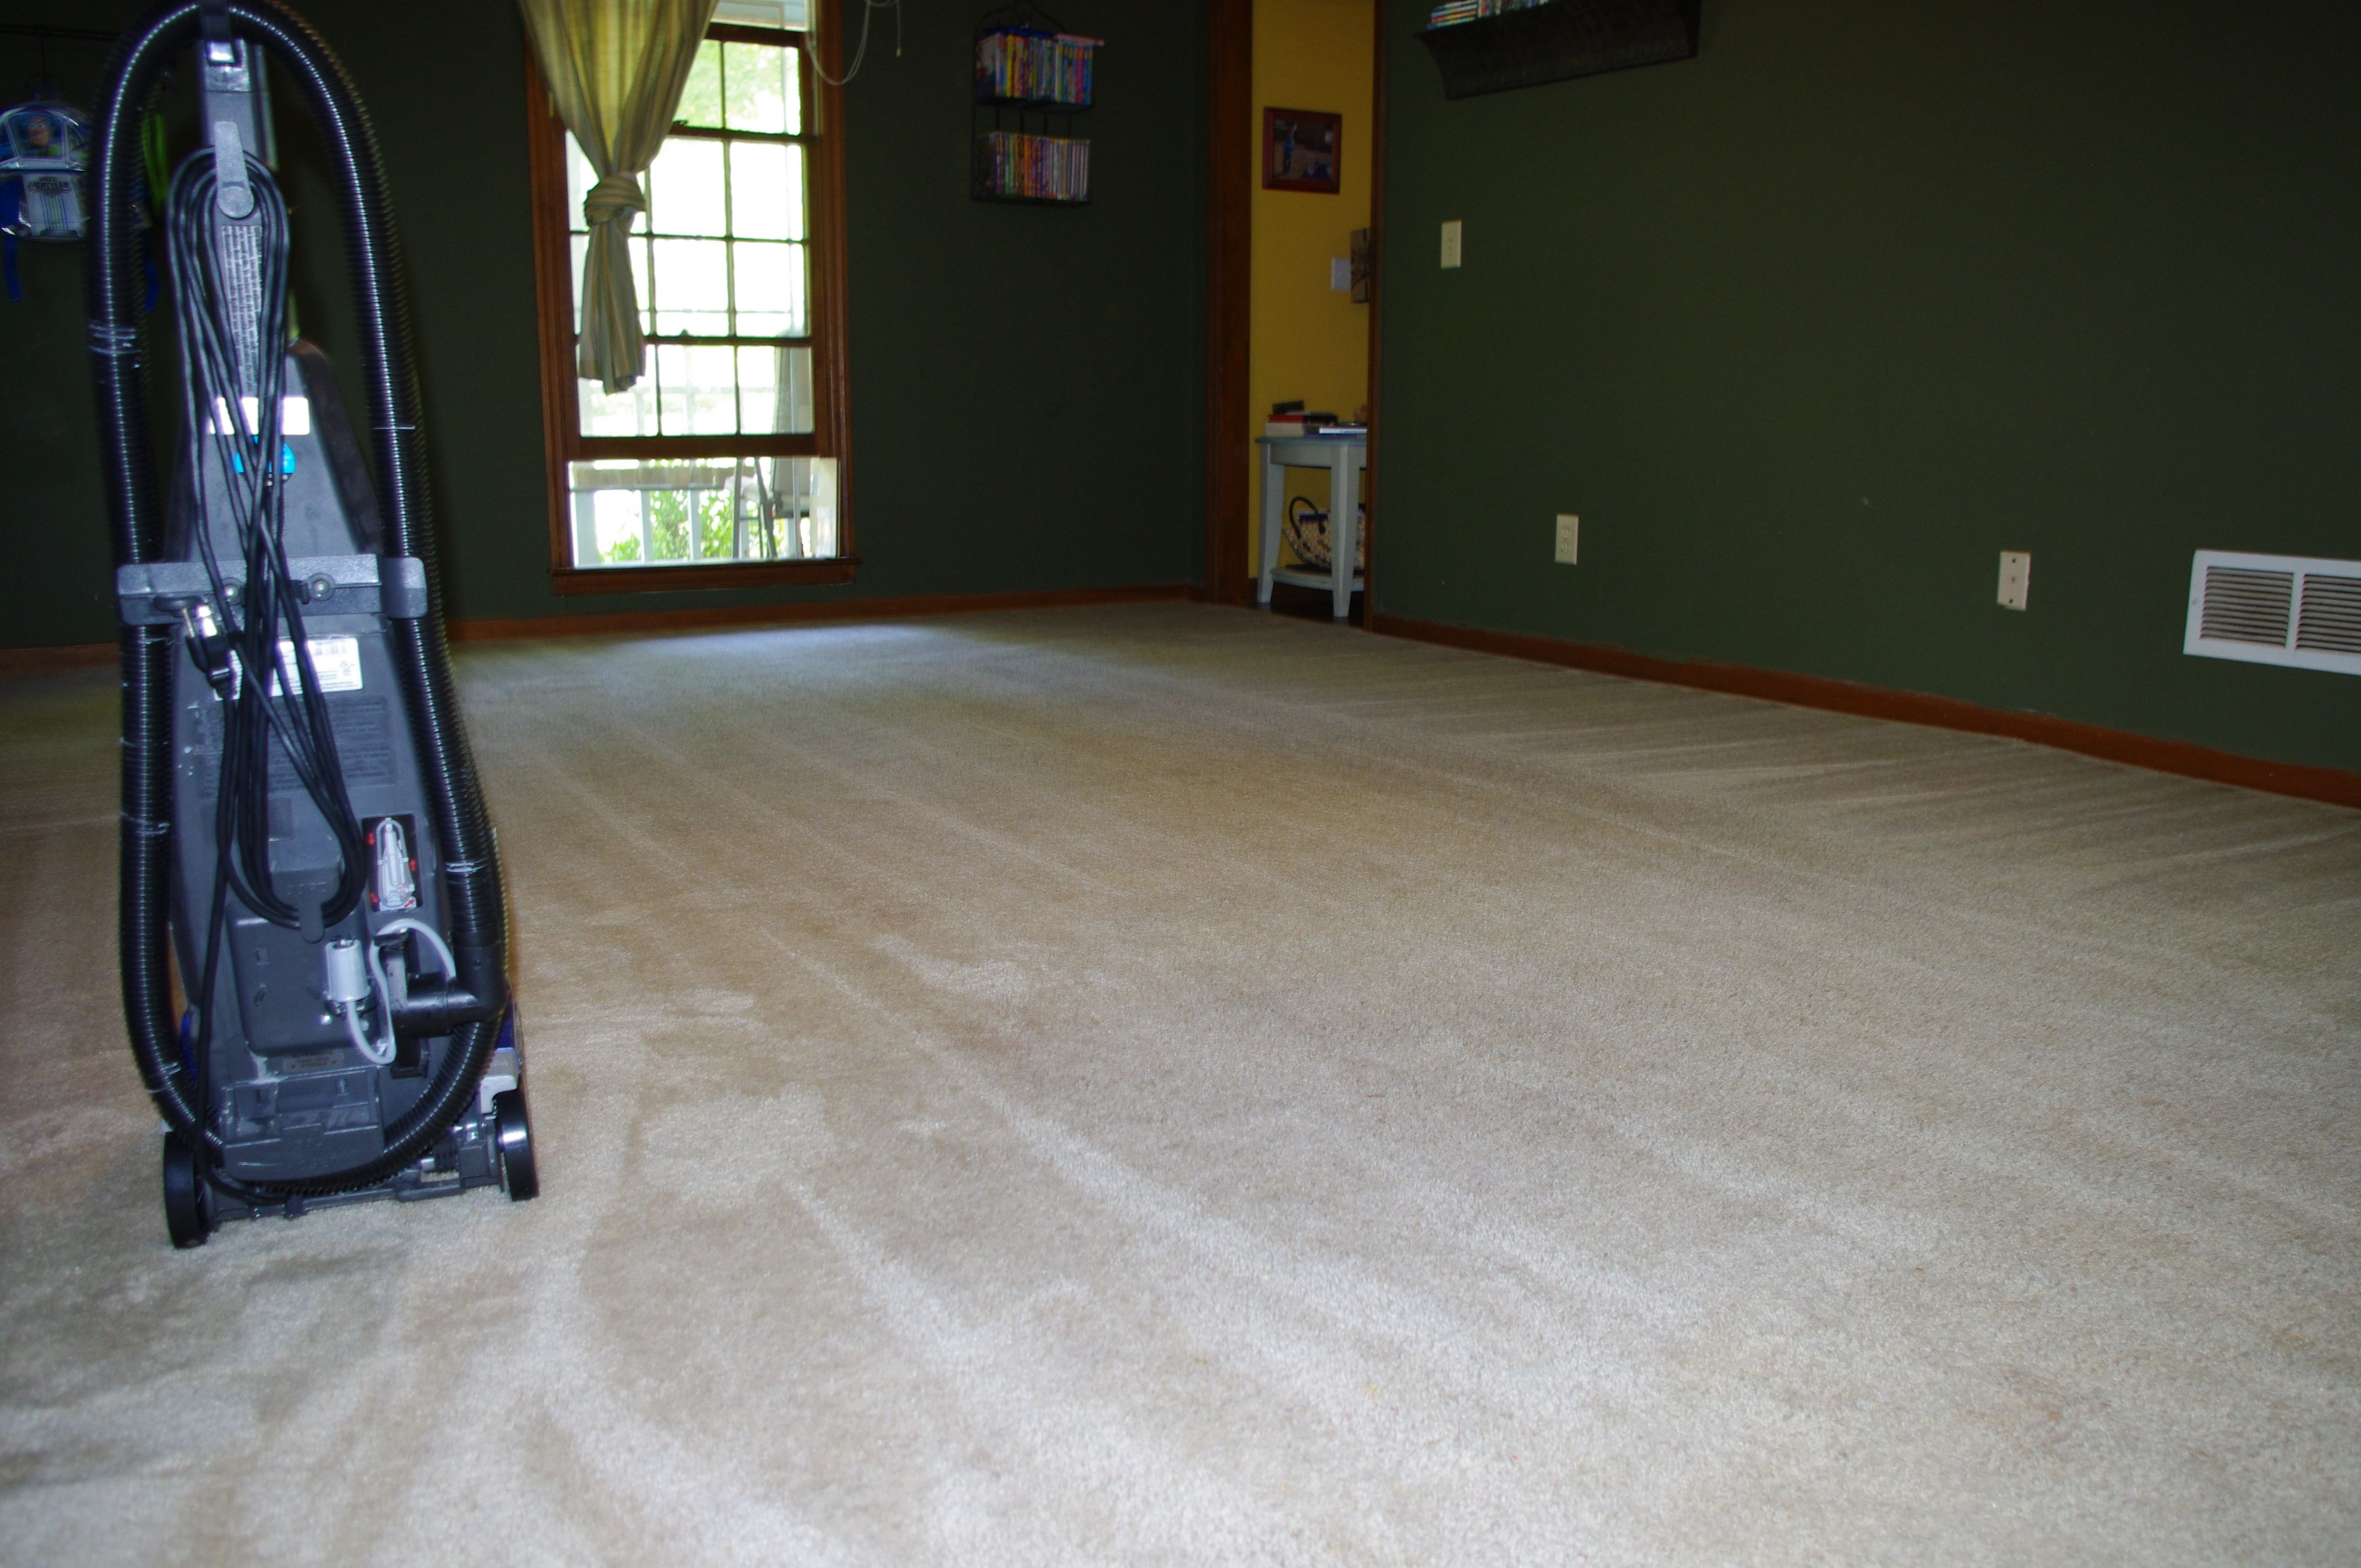 Carpet Cleaning How To Clean Carpet Cleaning Hacks Diy